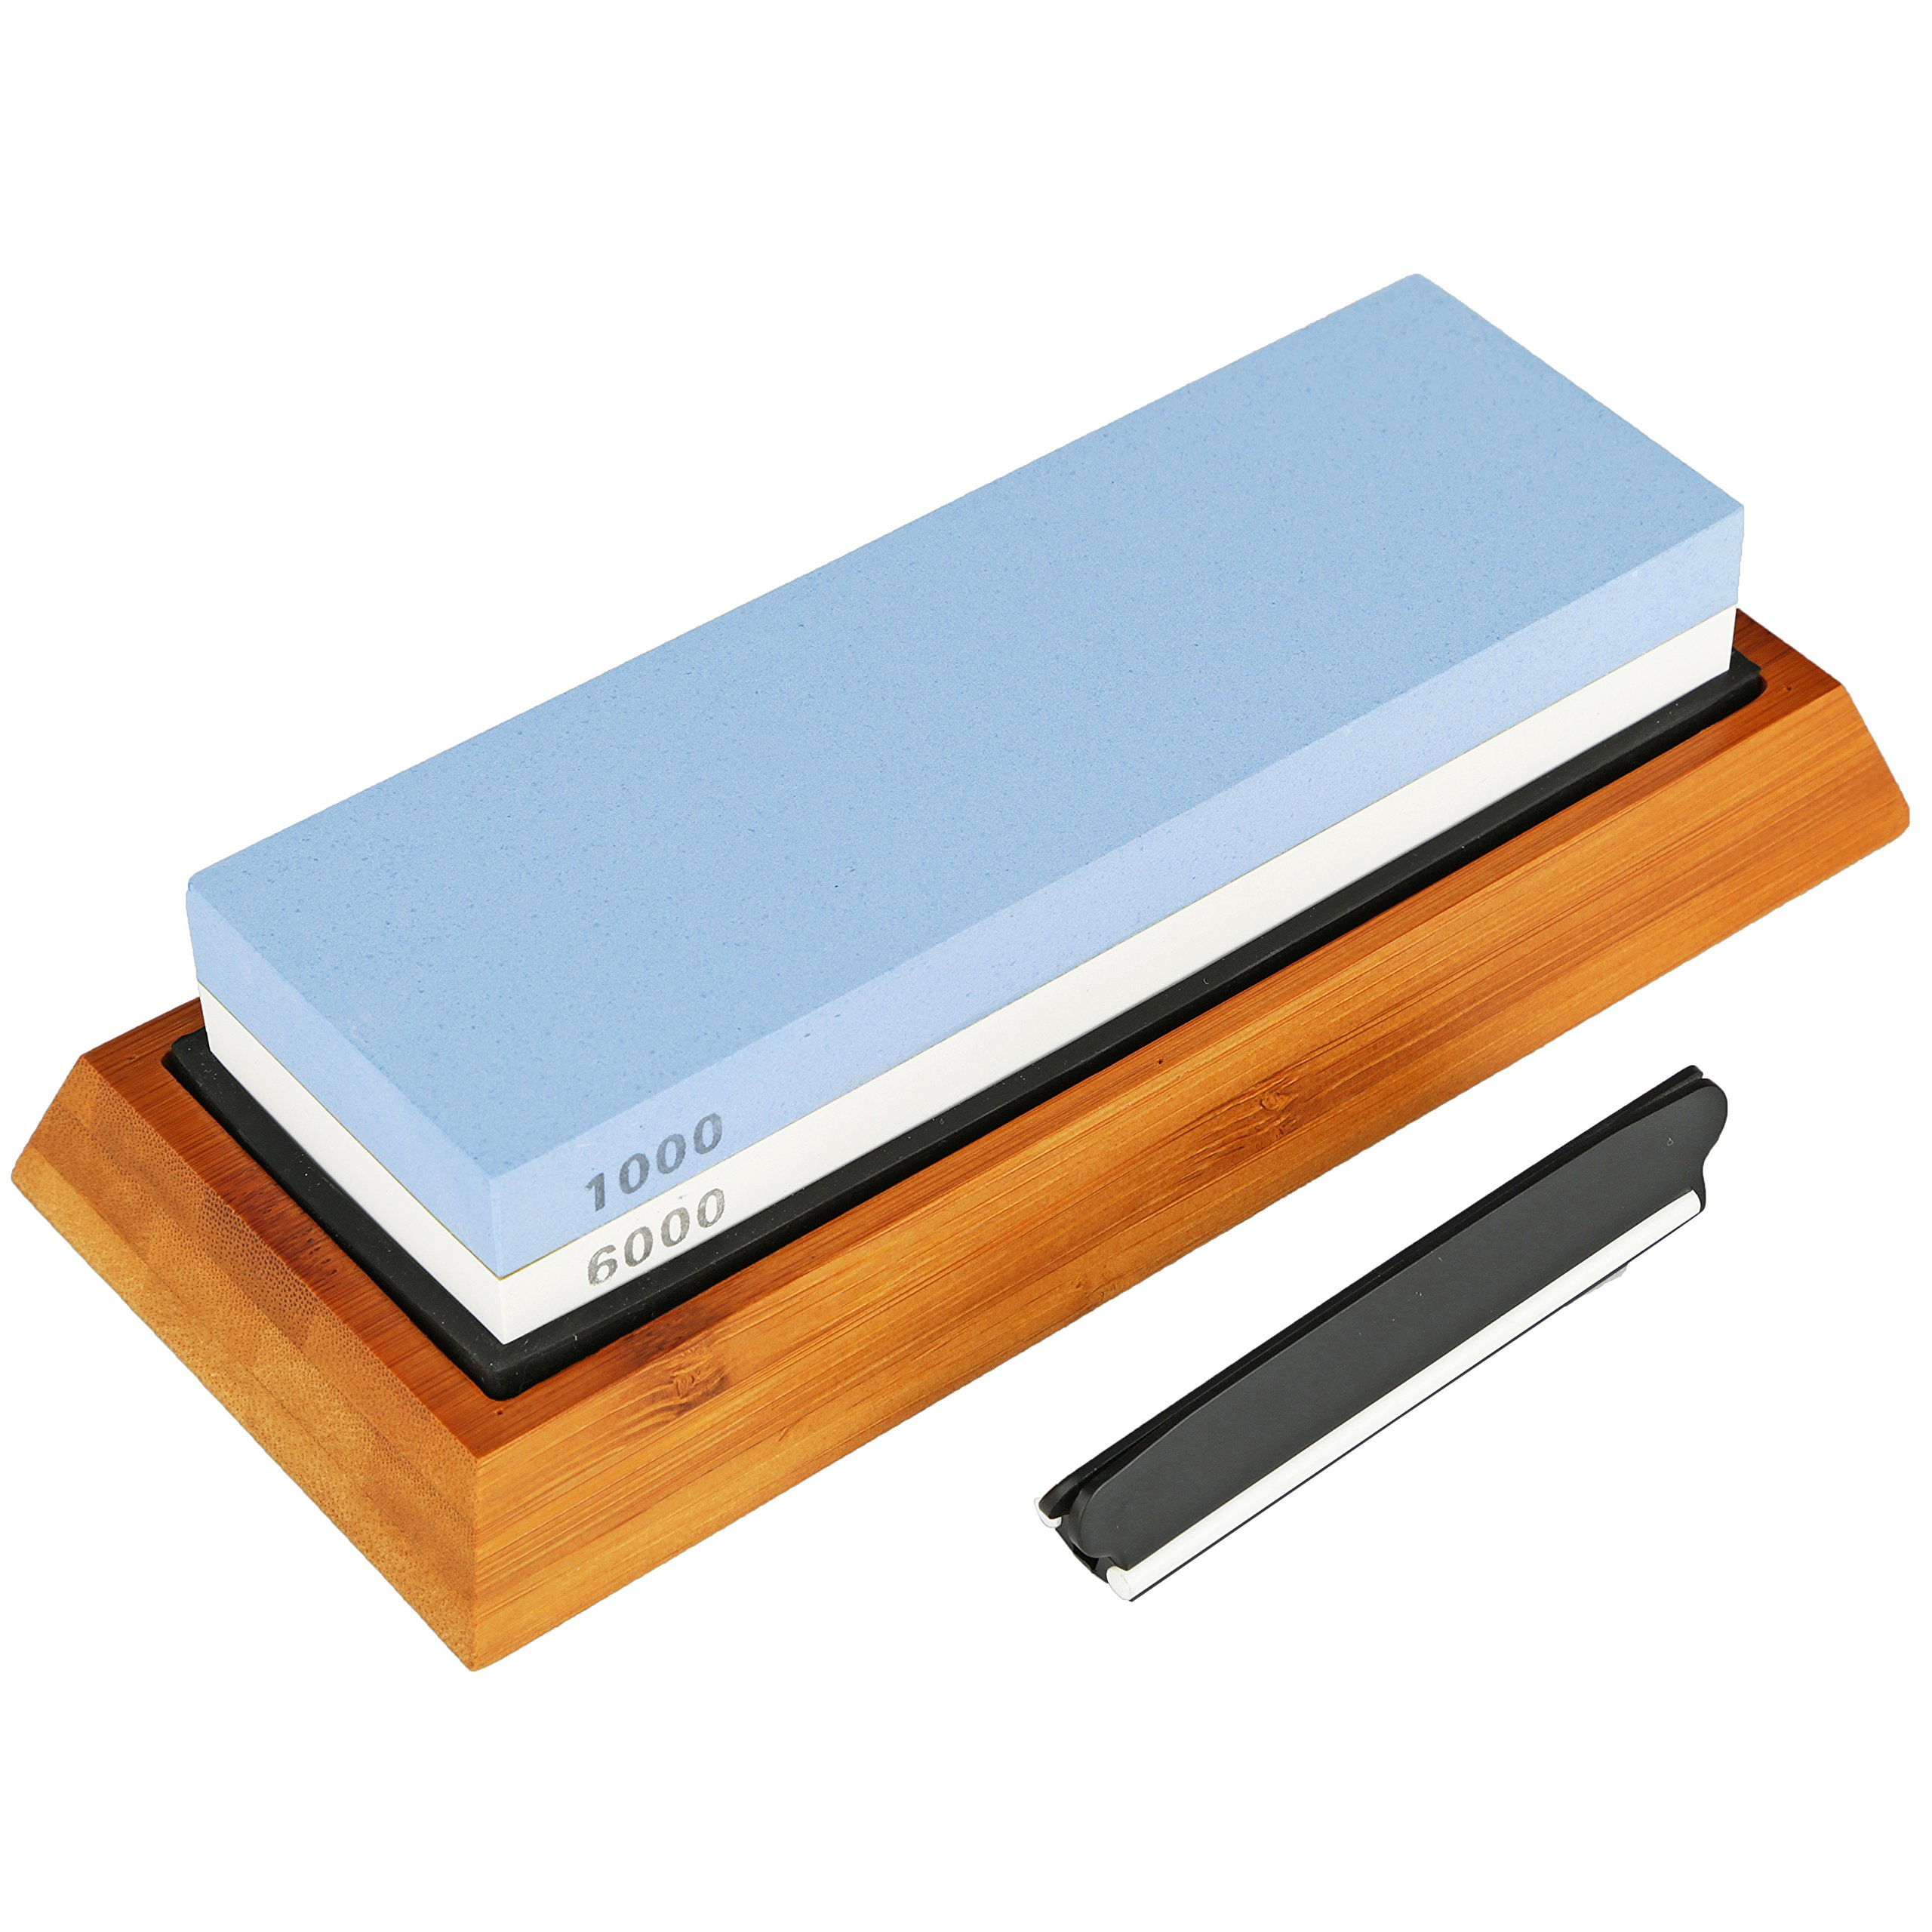 Whetstone Knife Sharpening Stone - 2 Sided 1000/6000 Grit Waterstone Knife Sharpener, Includes Non Slip Rubber and Bamboo Base with Bonus Angle Guide by Kruger Home